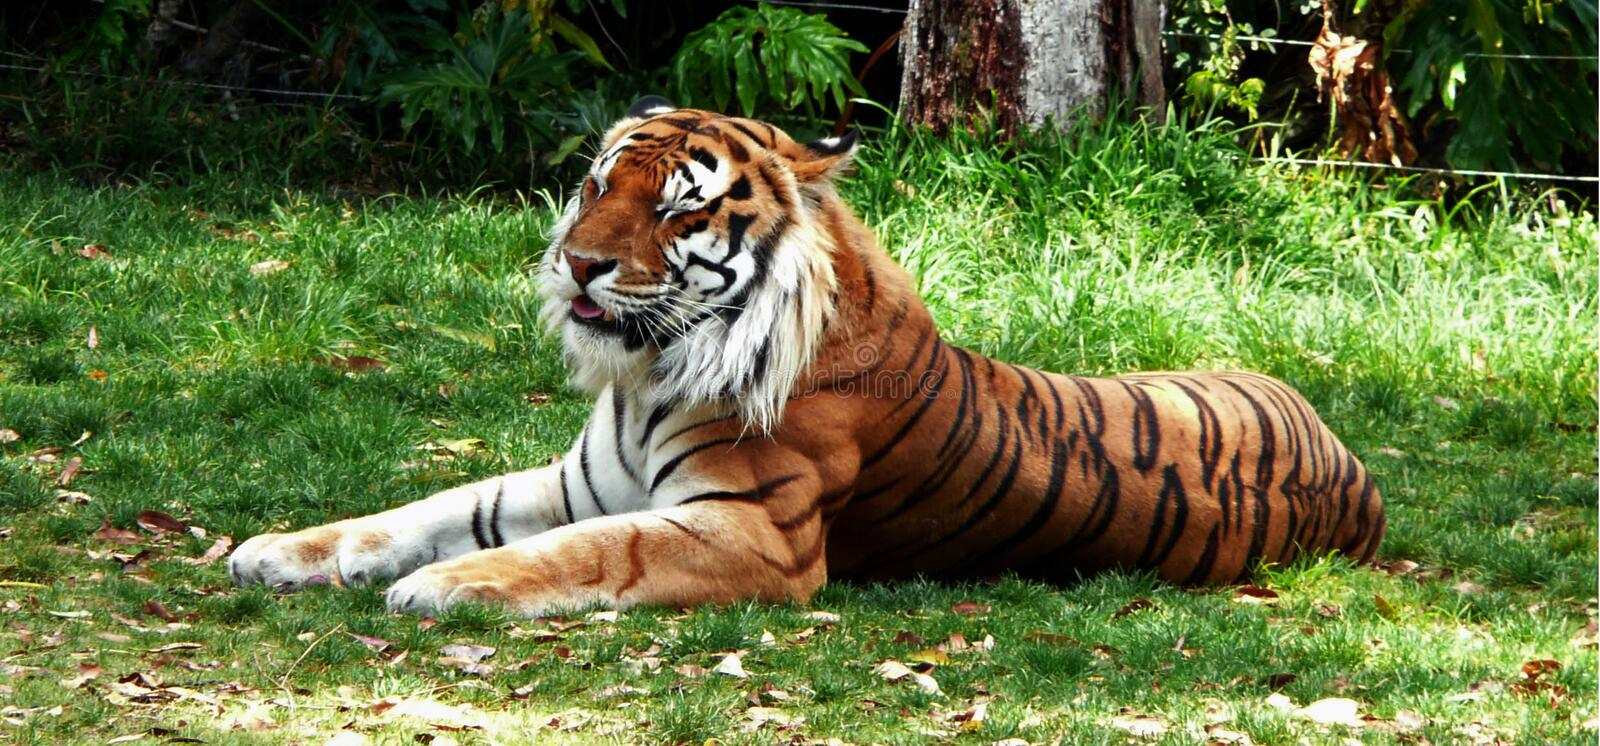 Tiger. The Tiger On The Grass stock photography